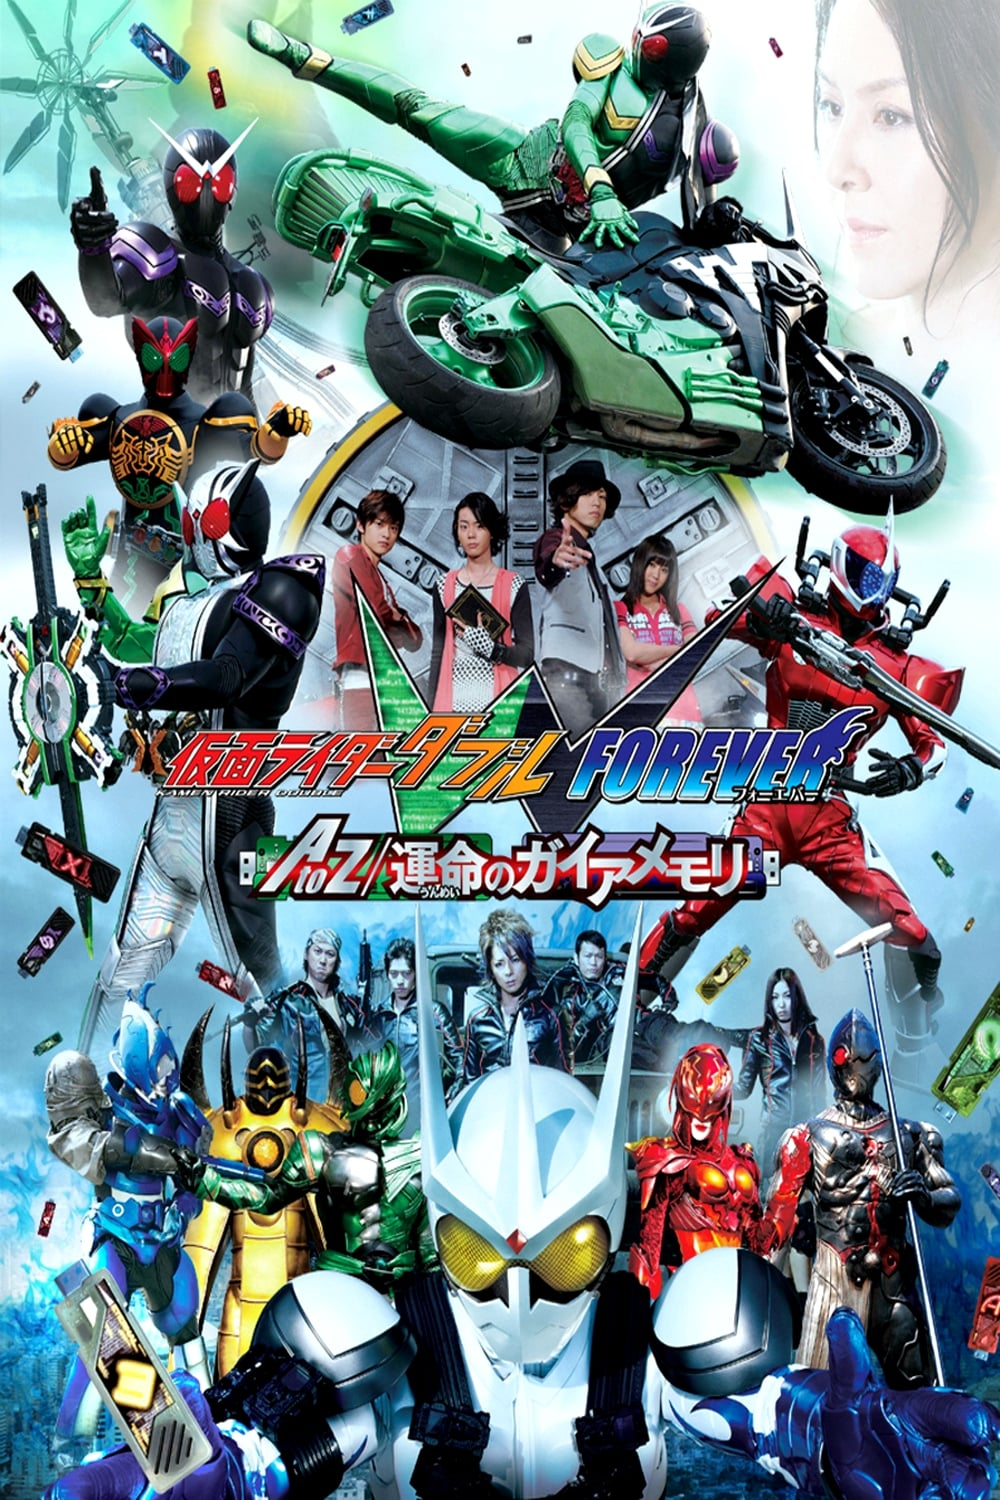 Kamen Rider W Forever: A to Z/The Gaia Memories of Fate (2010)